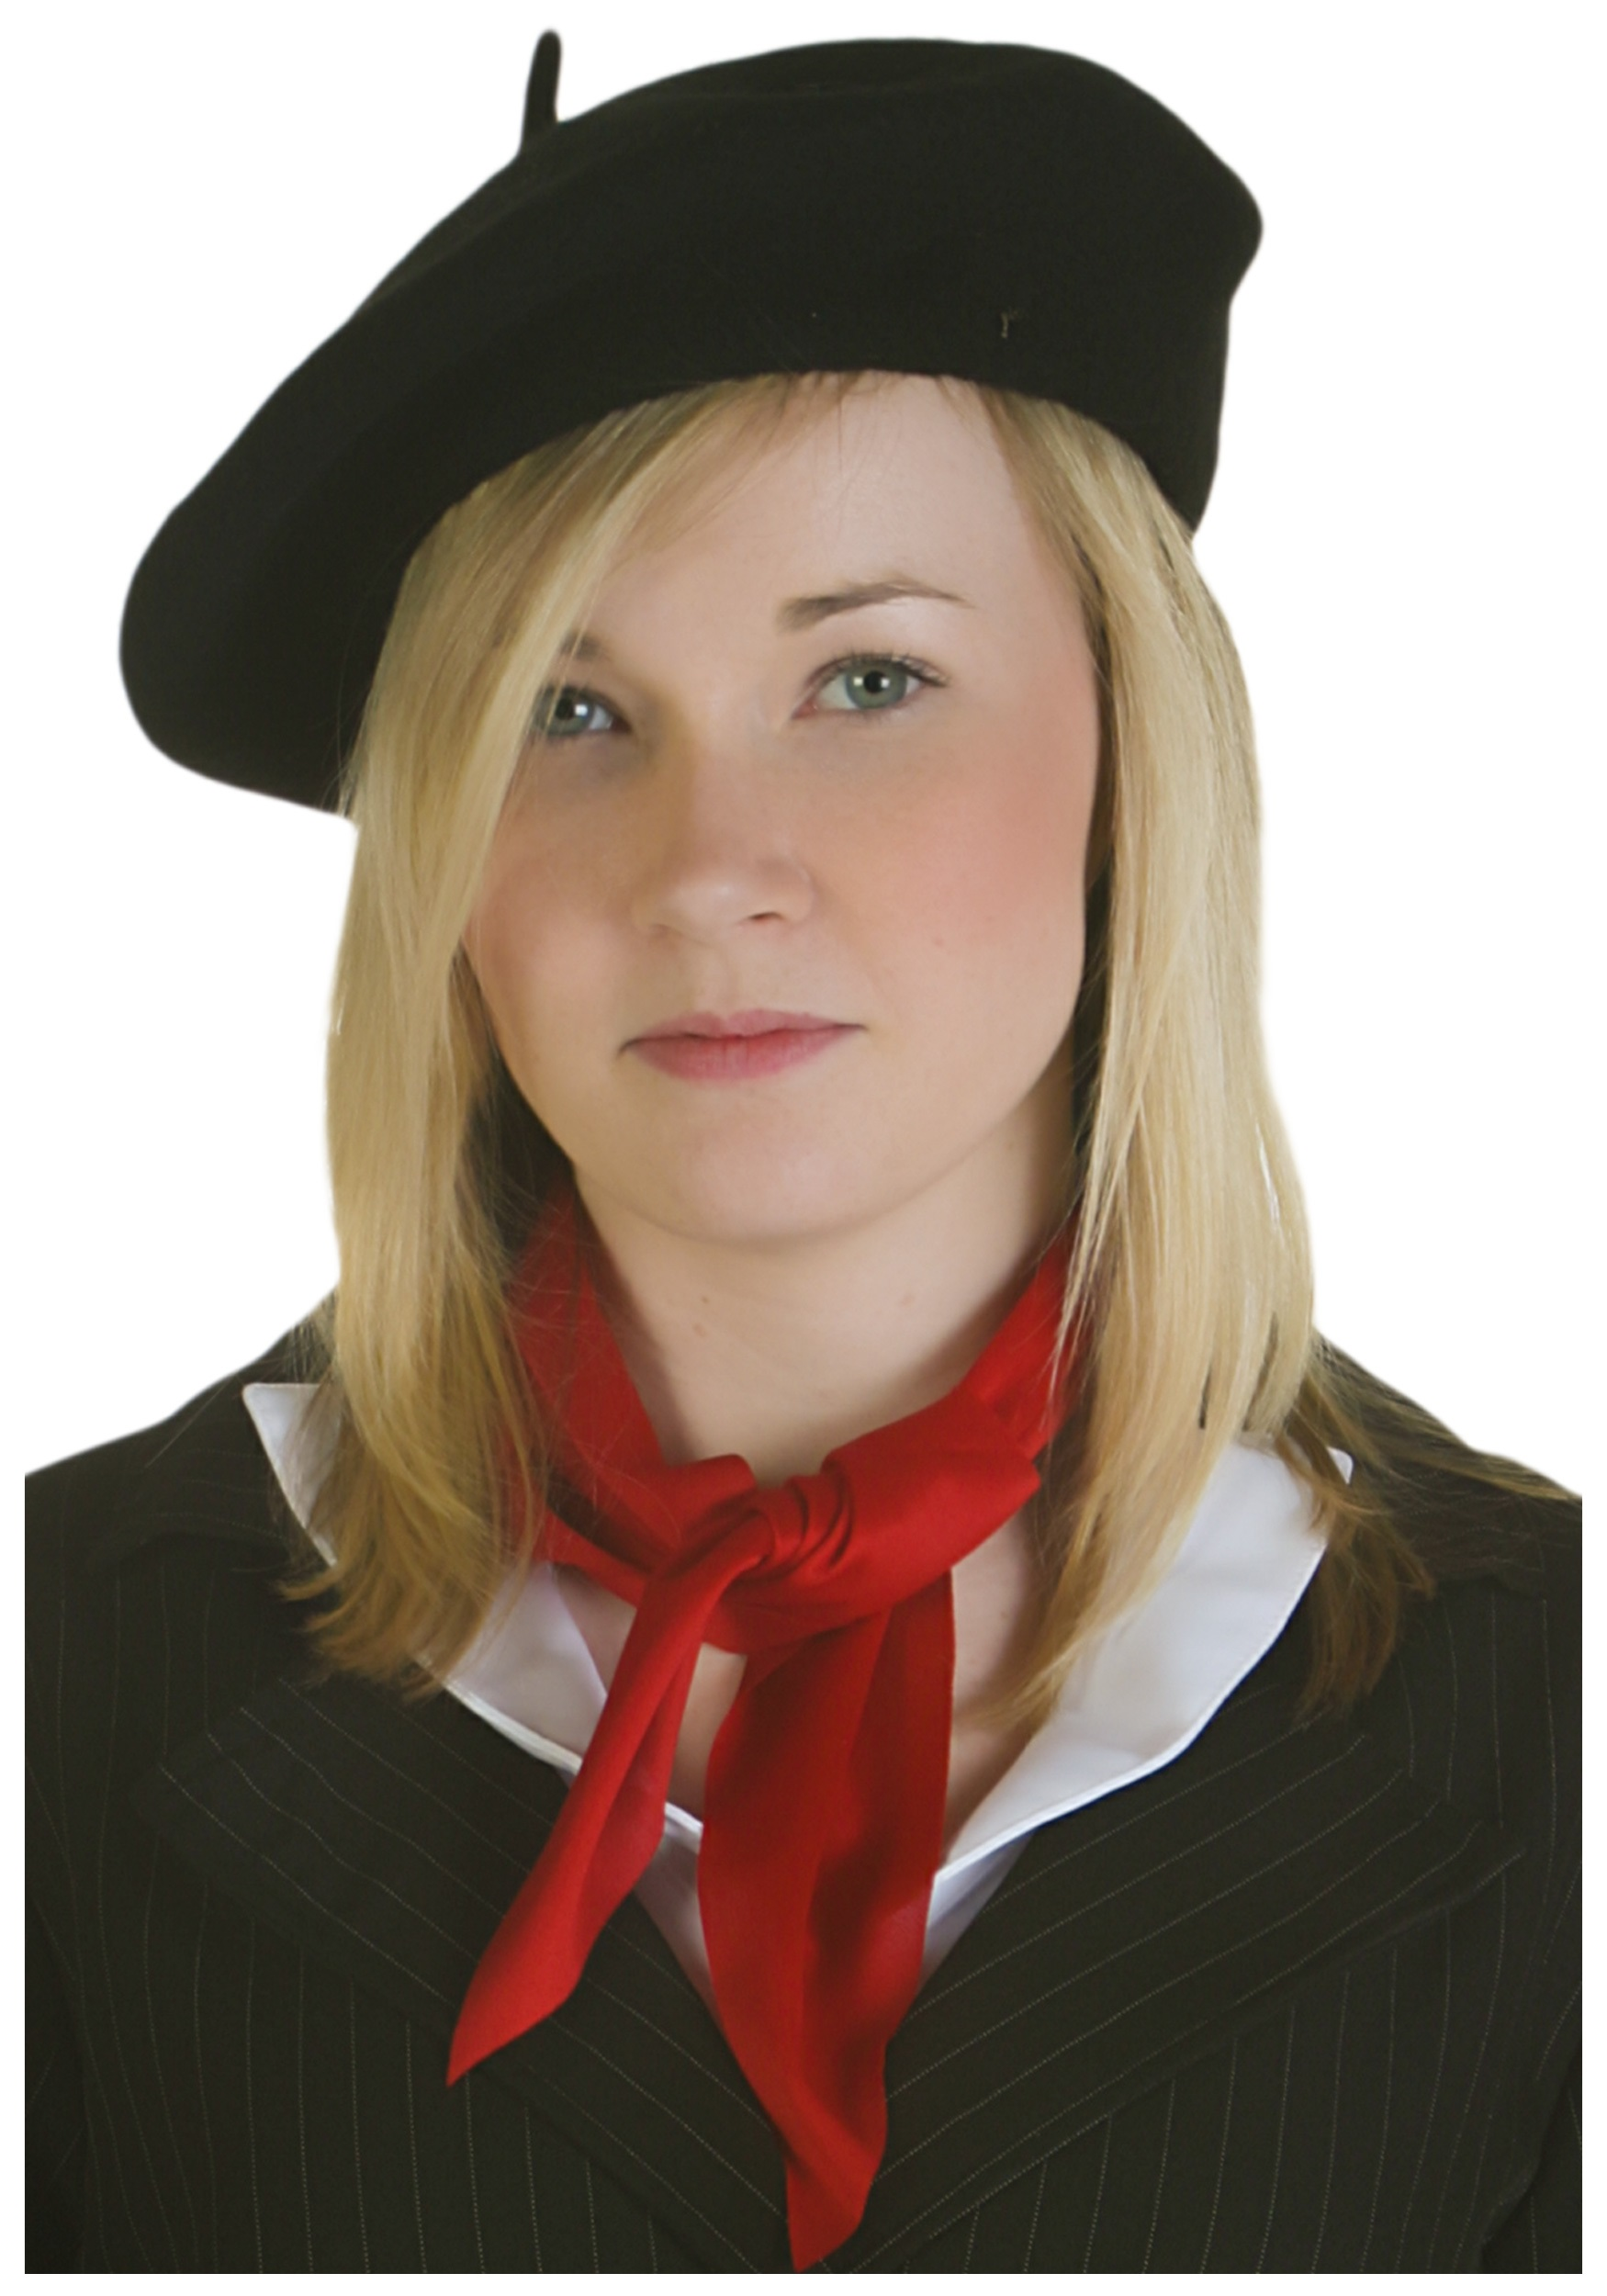 Find great deals on eBay for girls black beret. Shop with confidence.